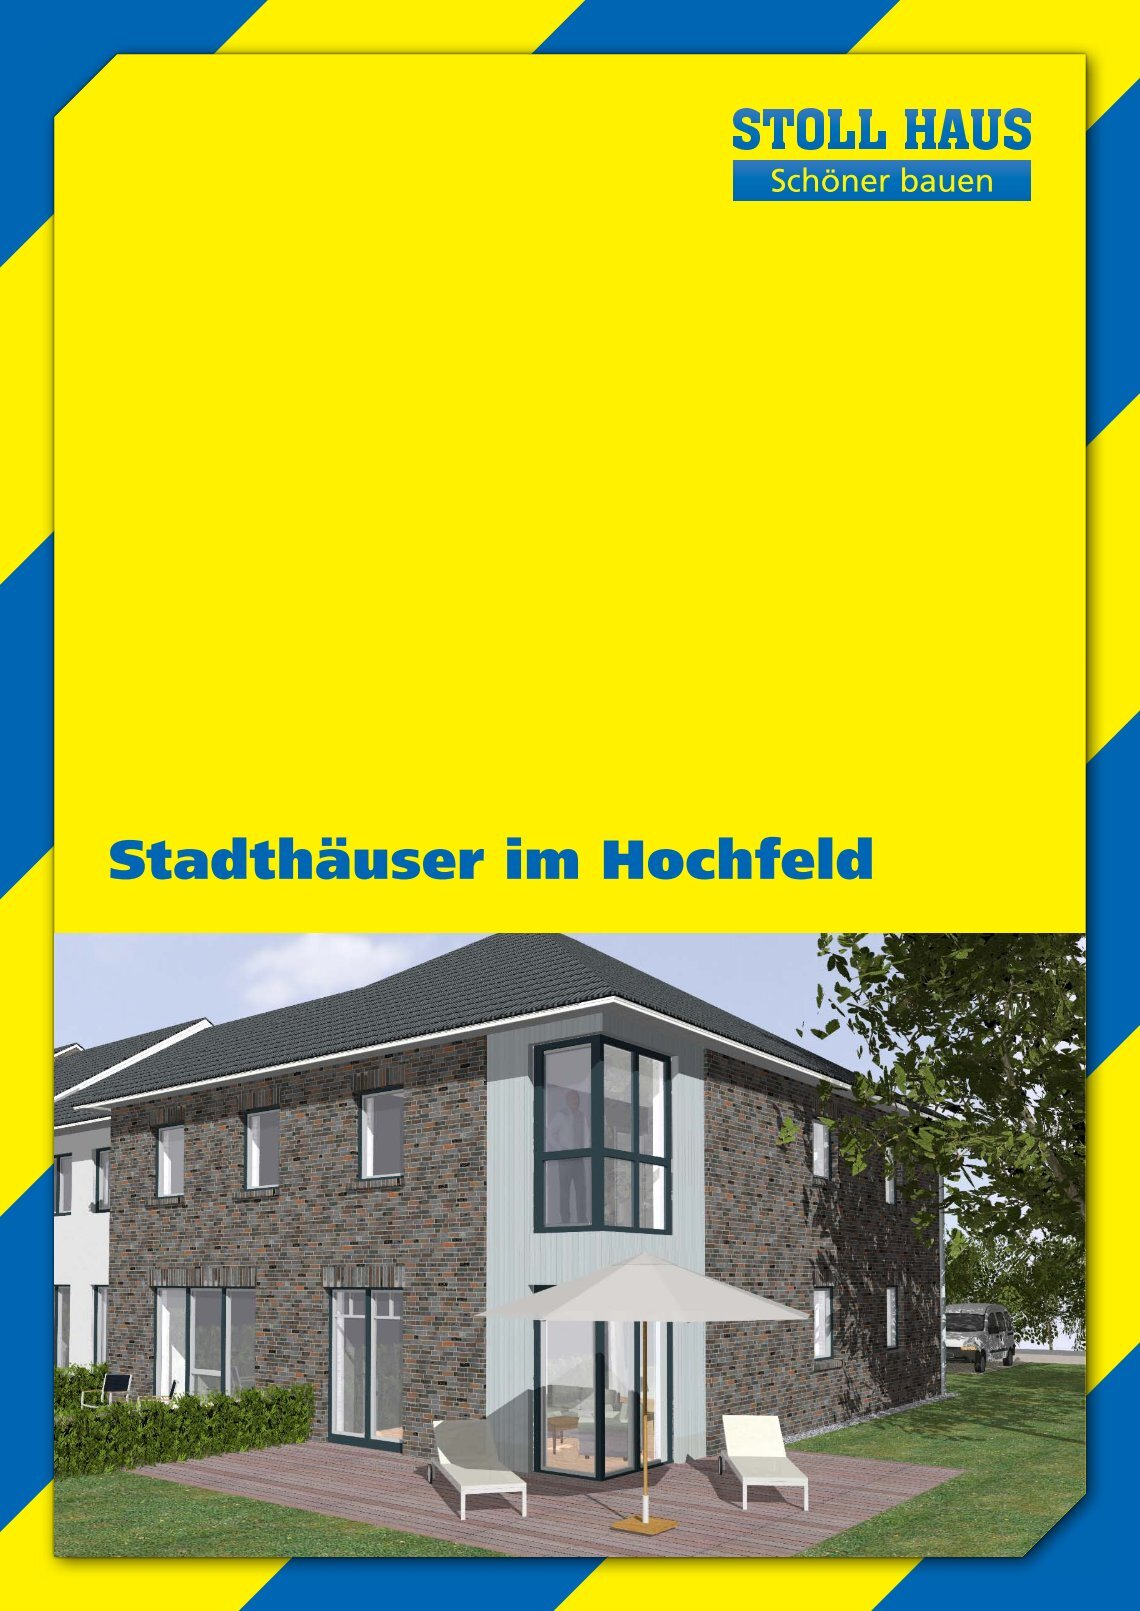 Stoll Haus 9 free magazines from stoll haus de